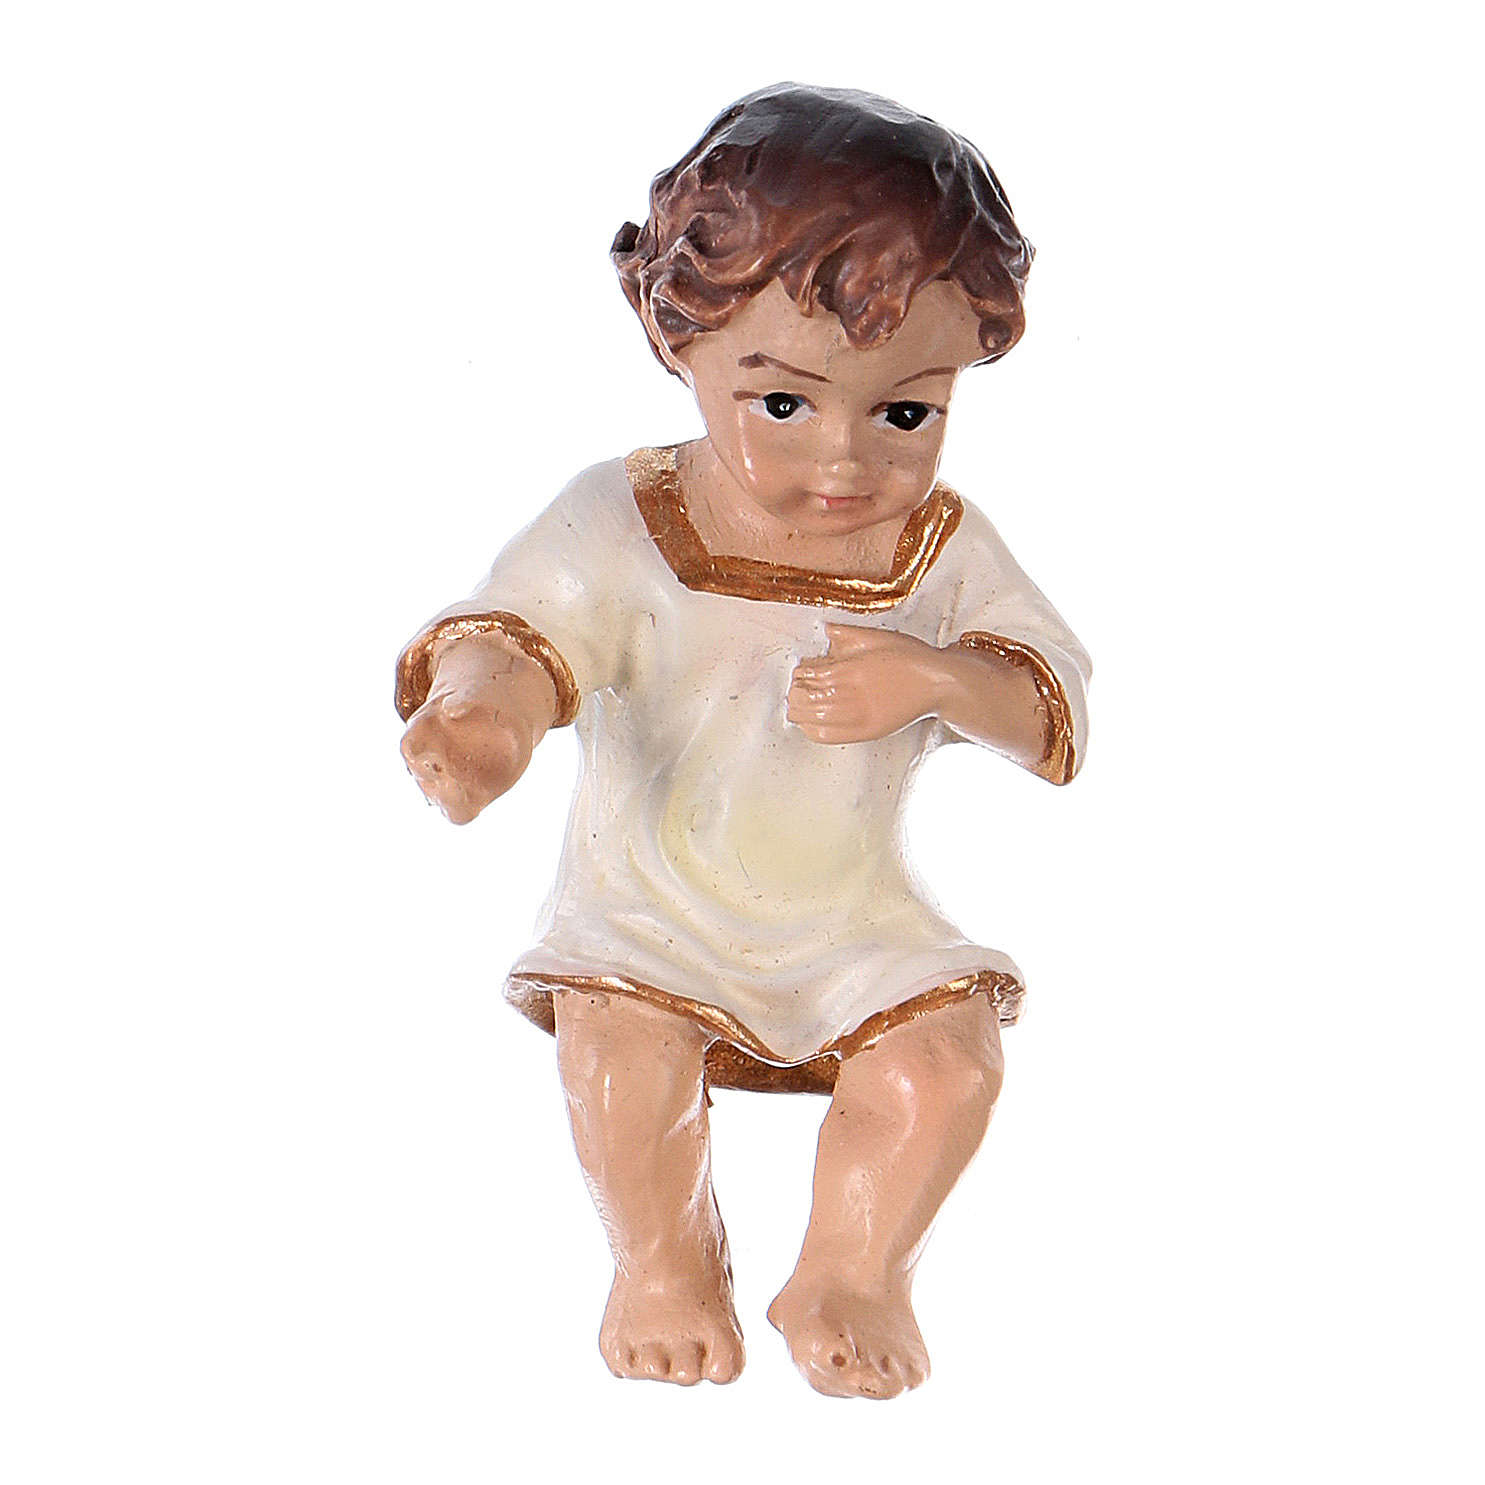 Child Jesus with a White Dress real h 4.5 cm resin 3